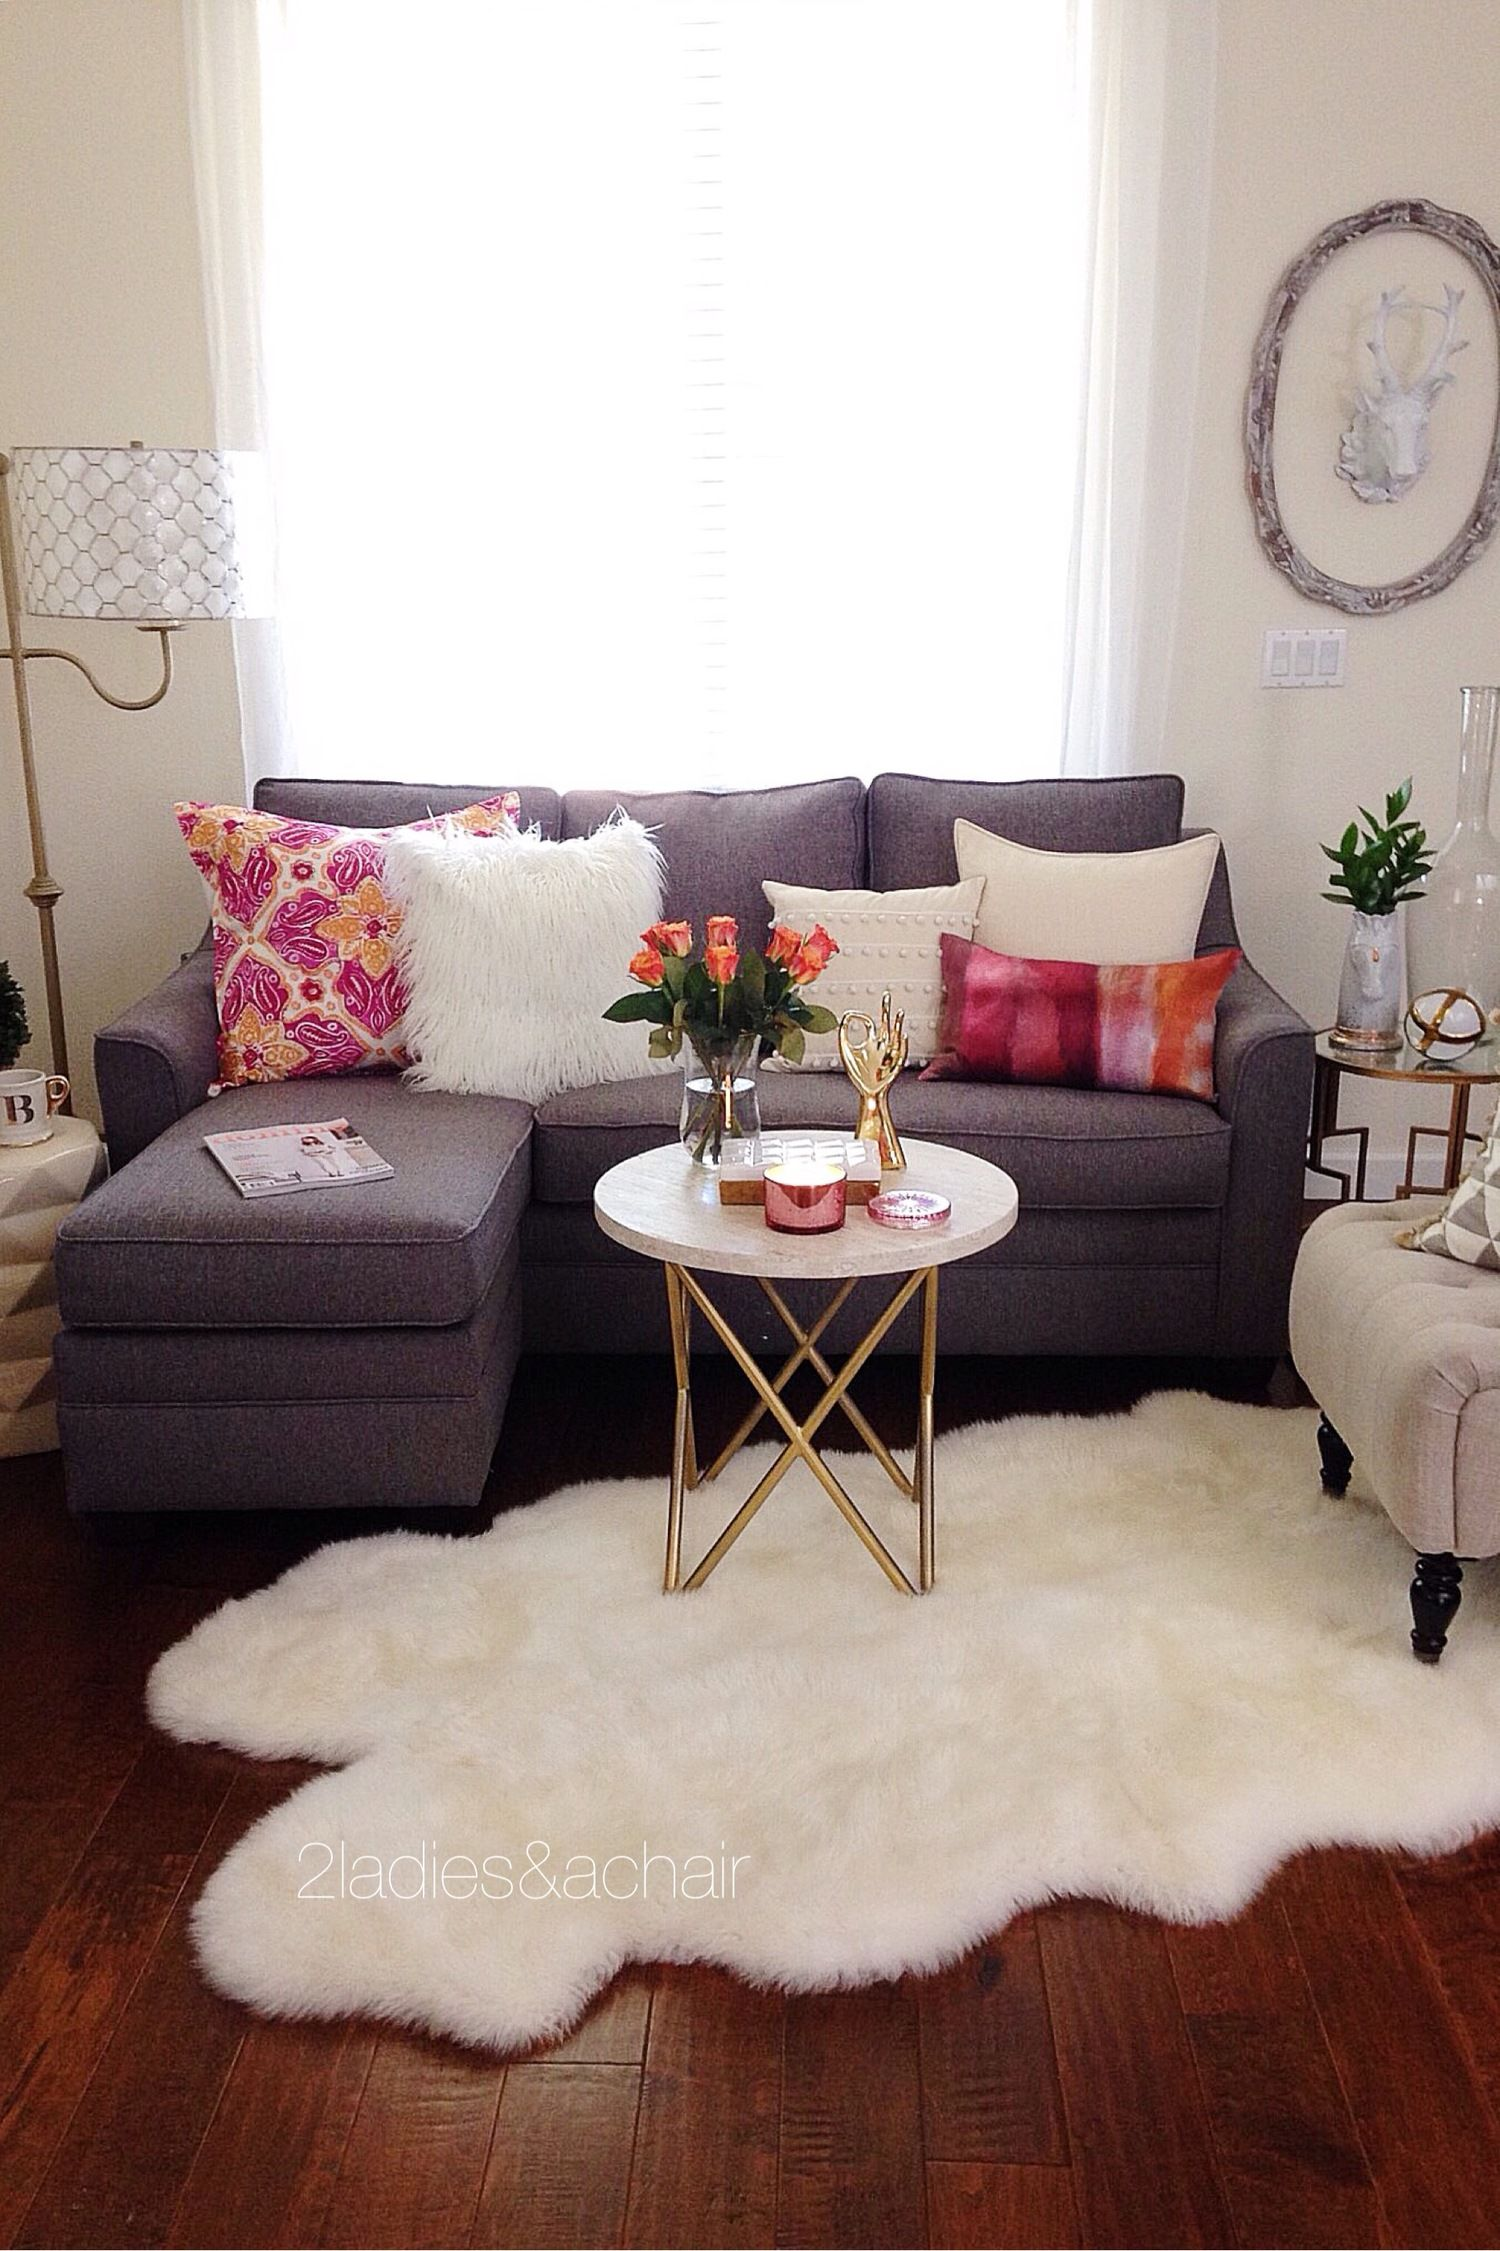 Apr 21 Decorating with Bright Colors